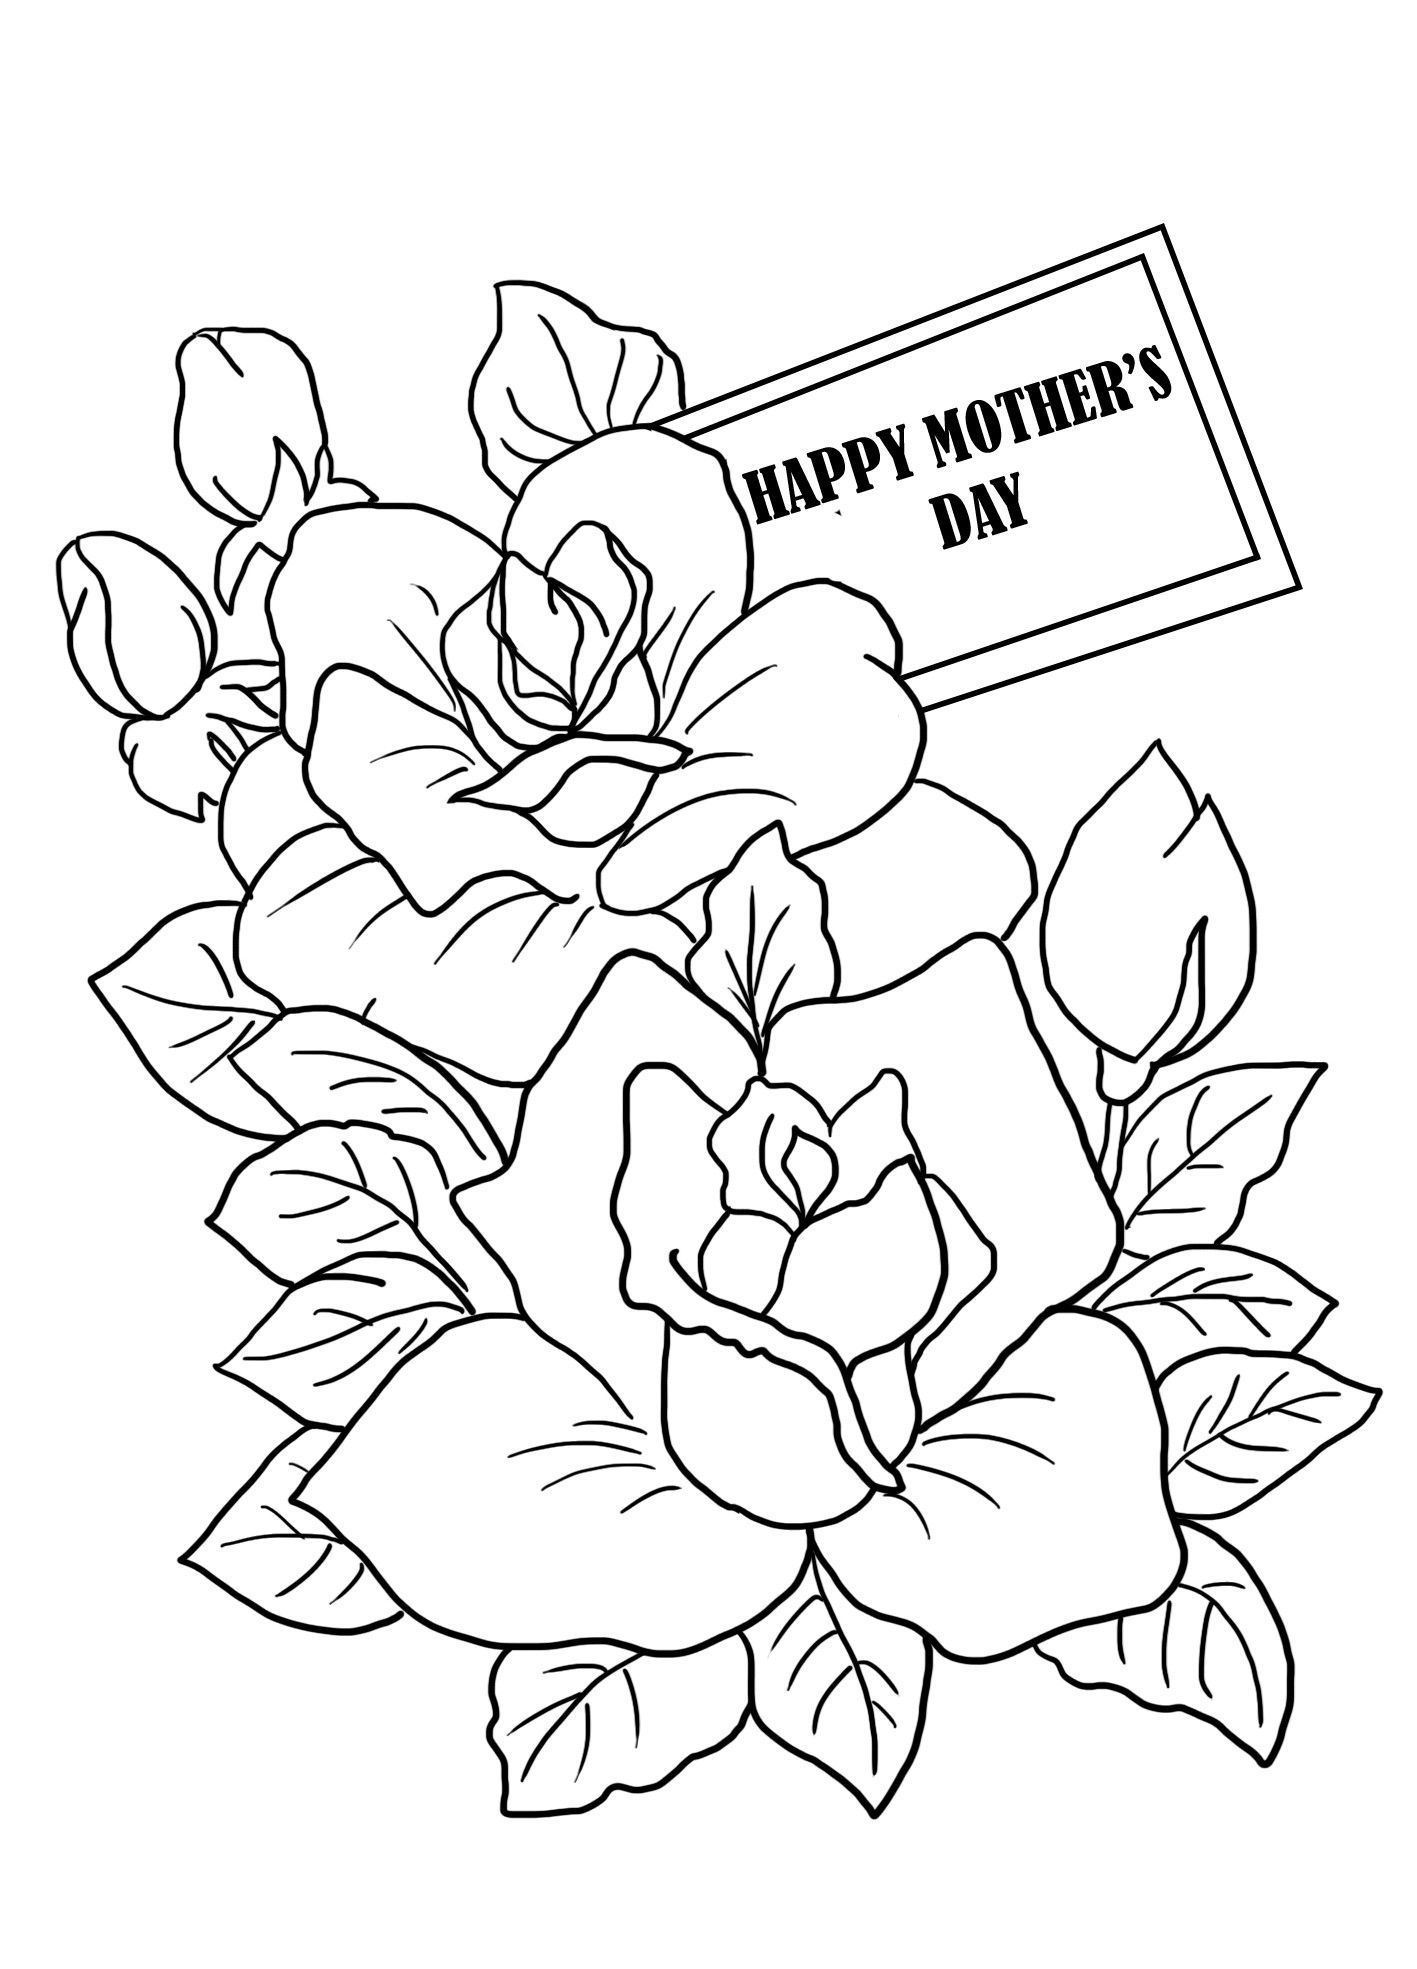 New Mothers Day Colouring Coloring Coloringpages Derin Mother Sday In 2020 Happy Birthday Coloring Pages Mothers Day Coloring Pages Birthday Coloring Pages